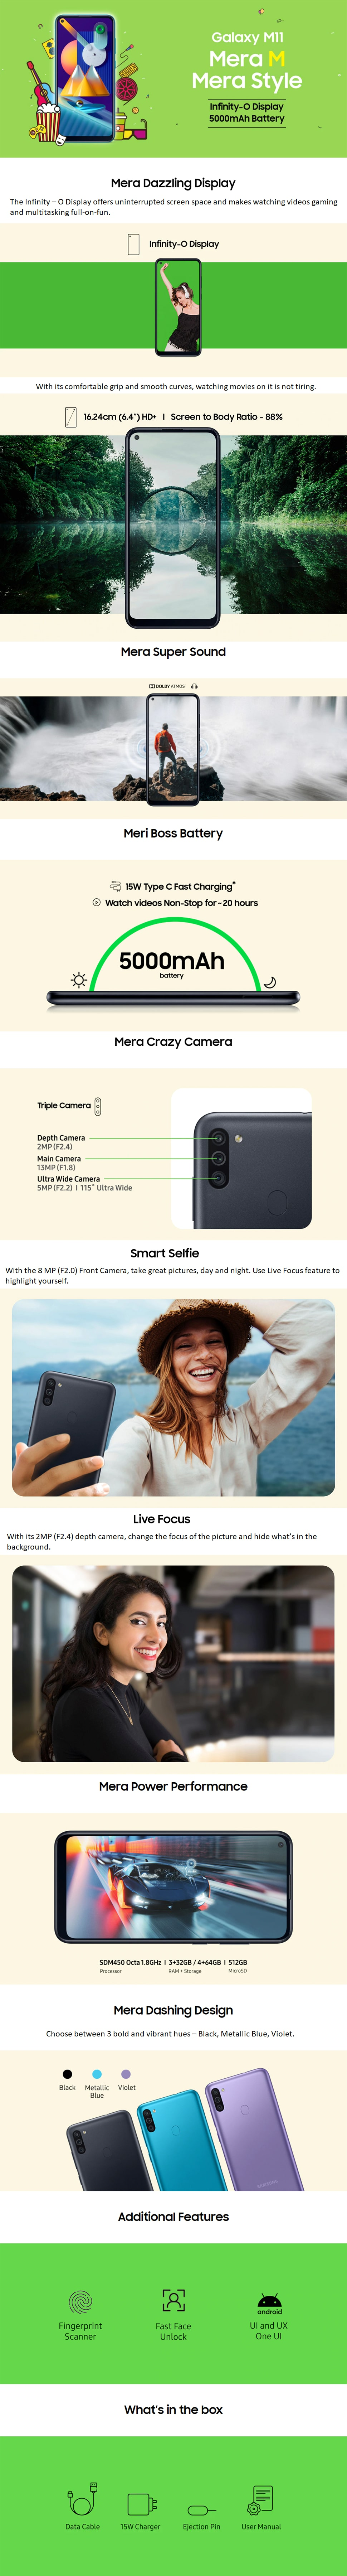 https://assetscdn1.paytm.com/images/catalog/product/M/MO/MOBPHILIPS-DLP1ACCE1019533CDCD243/9.png